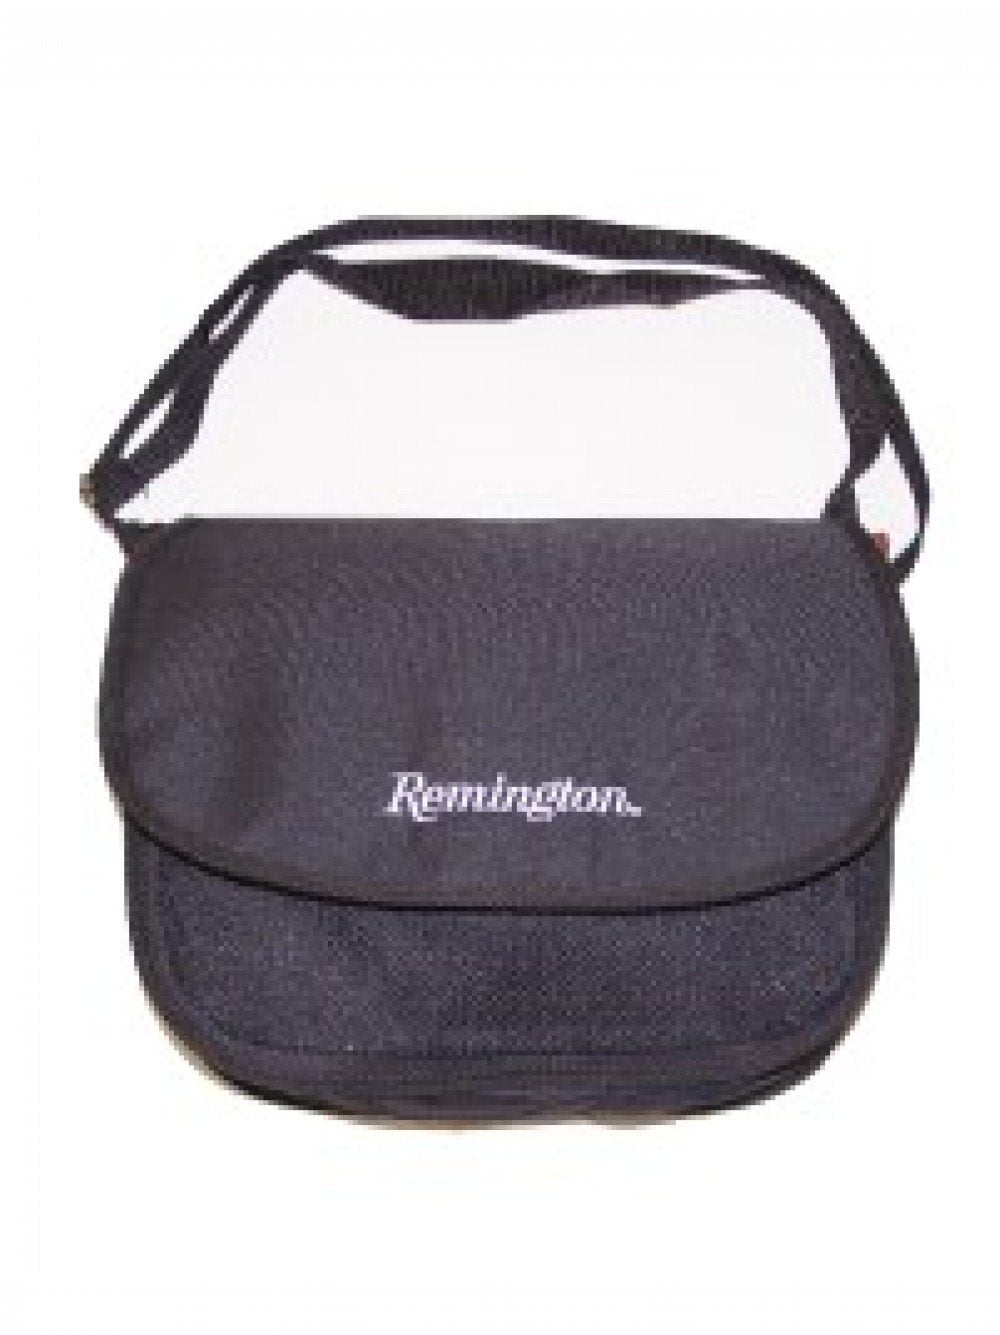 Remington Cartridge Bag - reid outdoors